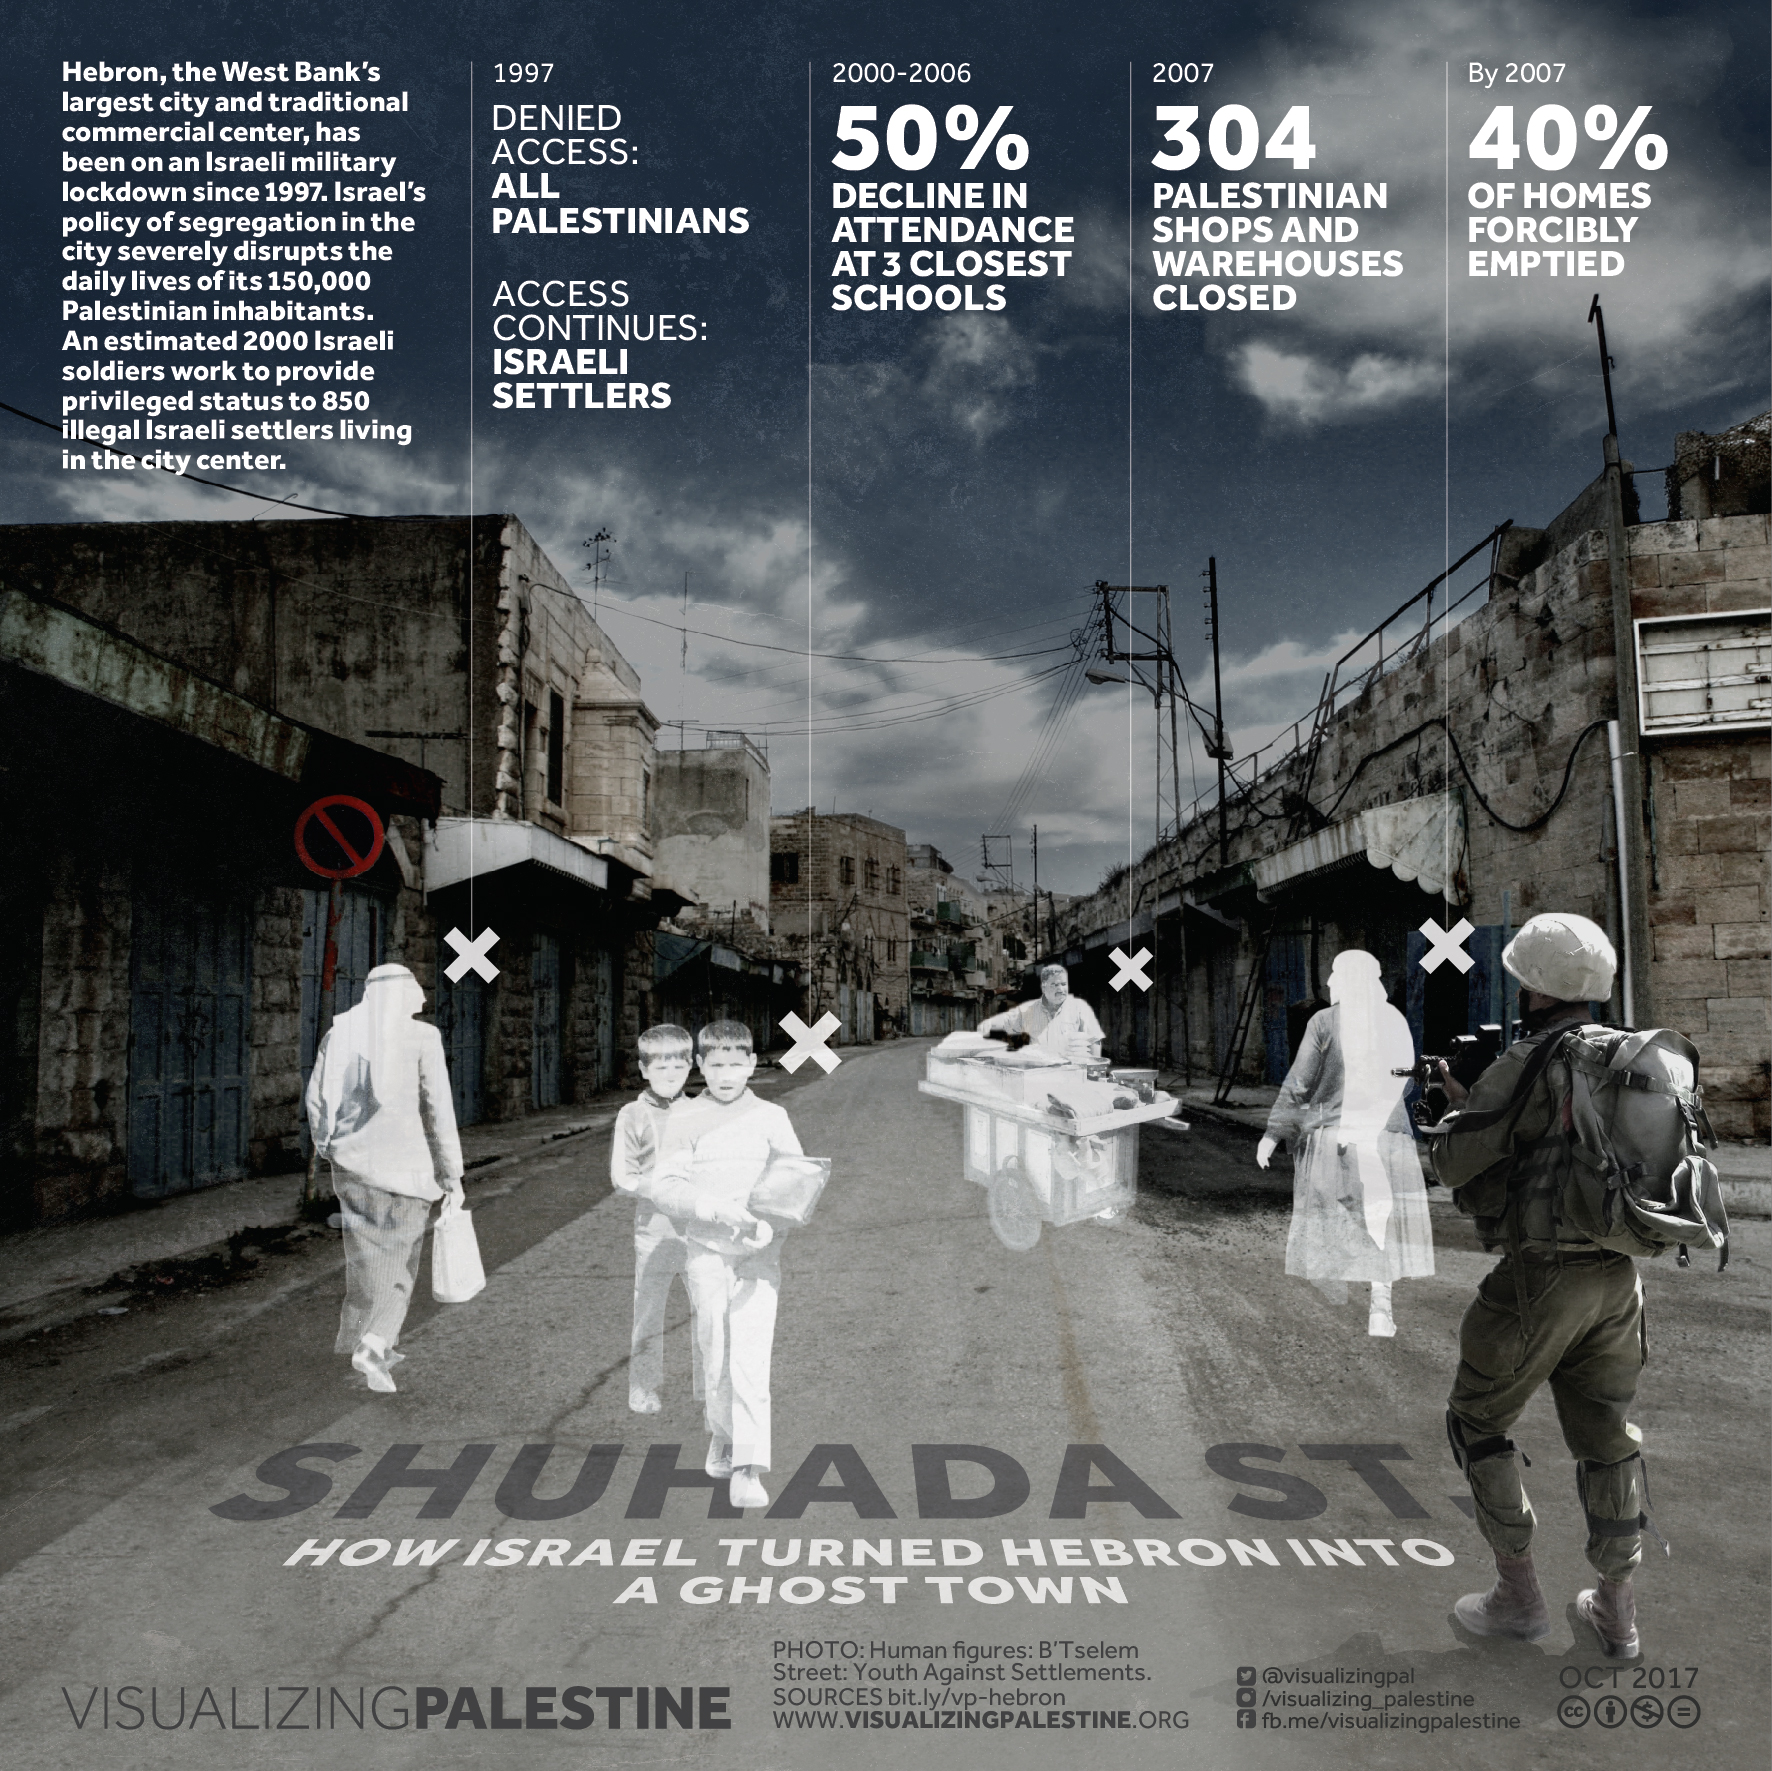 Shuhada Street: How Israel Turned Hebron into a Ghost Town